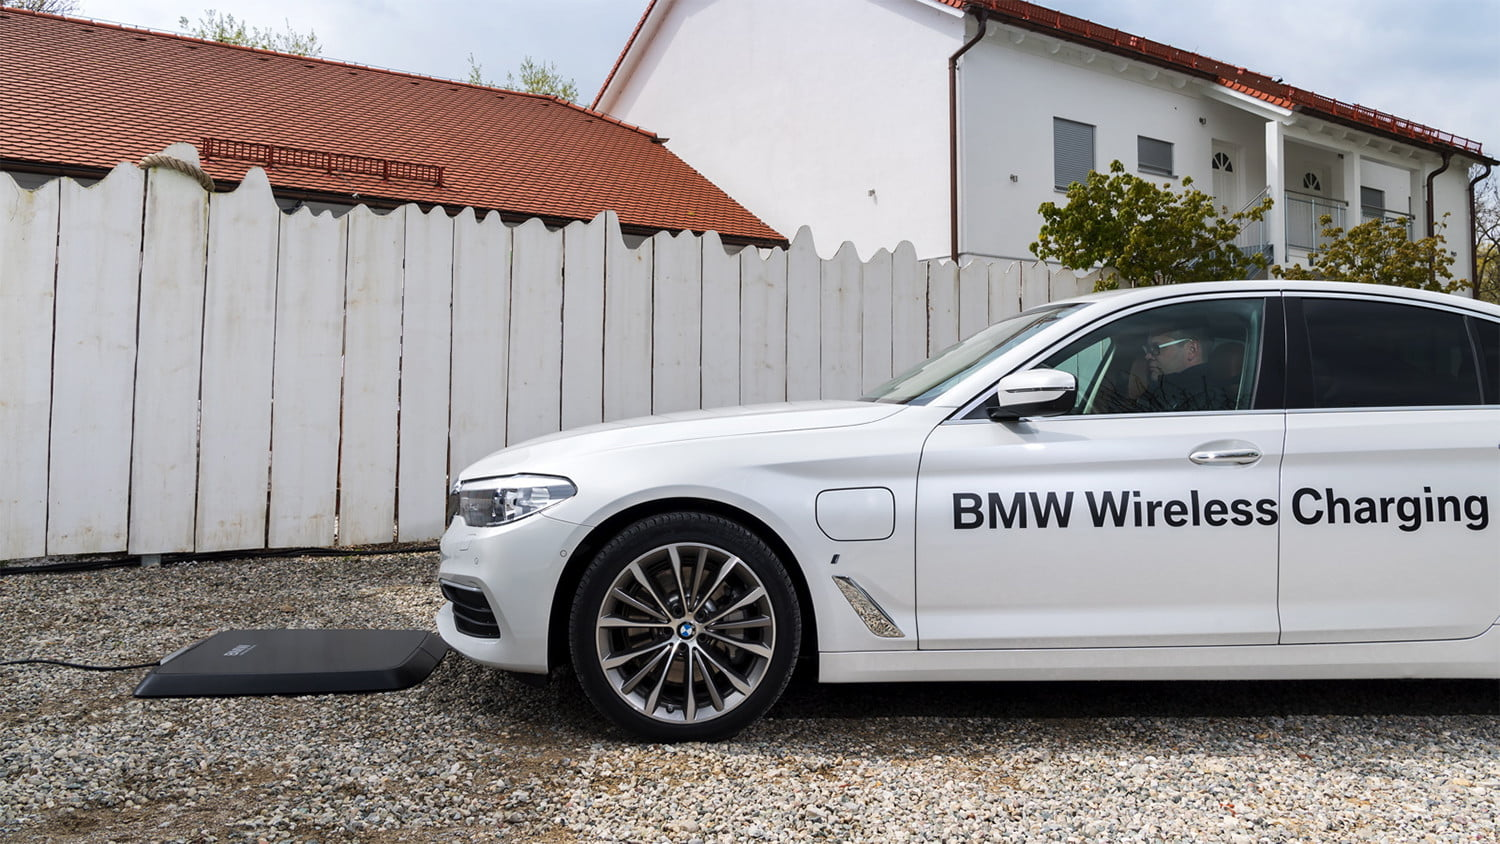 Wireless Car Charging For Evs Coming This Summer Courtesy Of Bmw